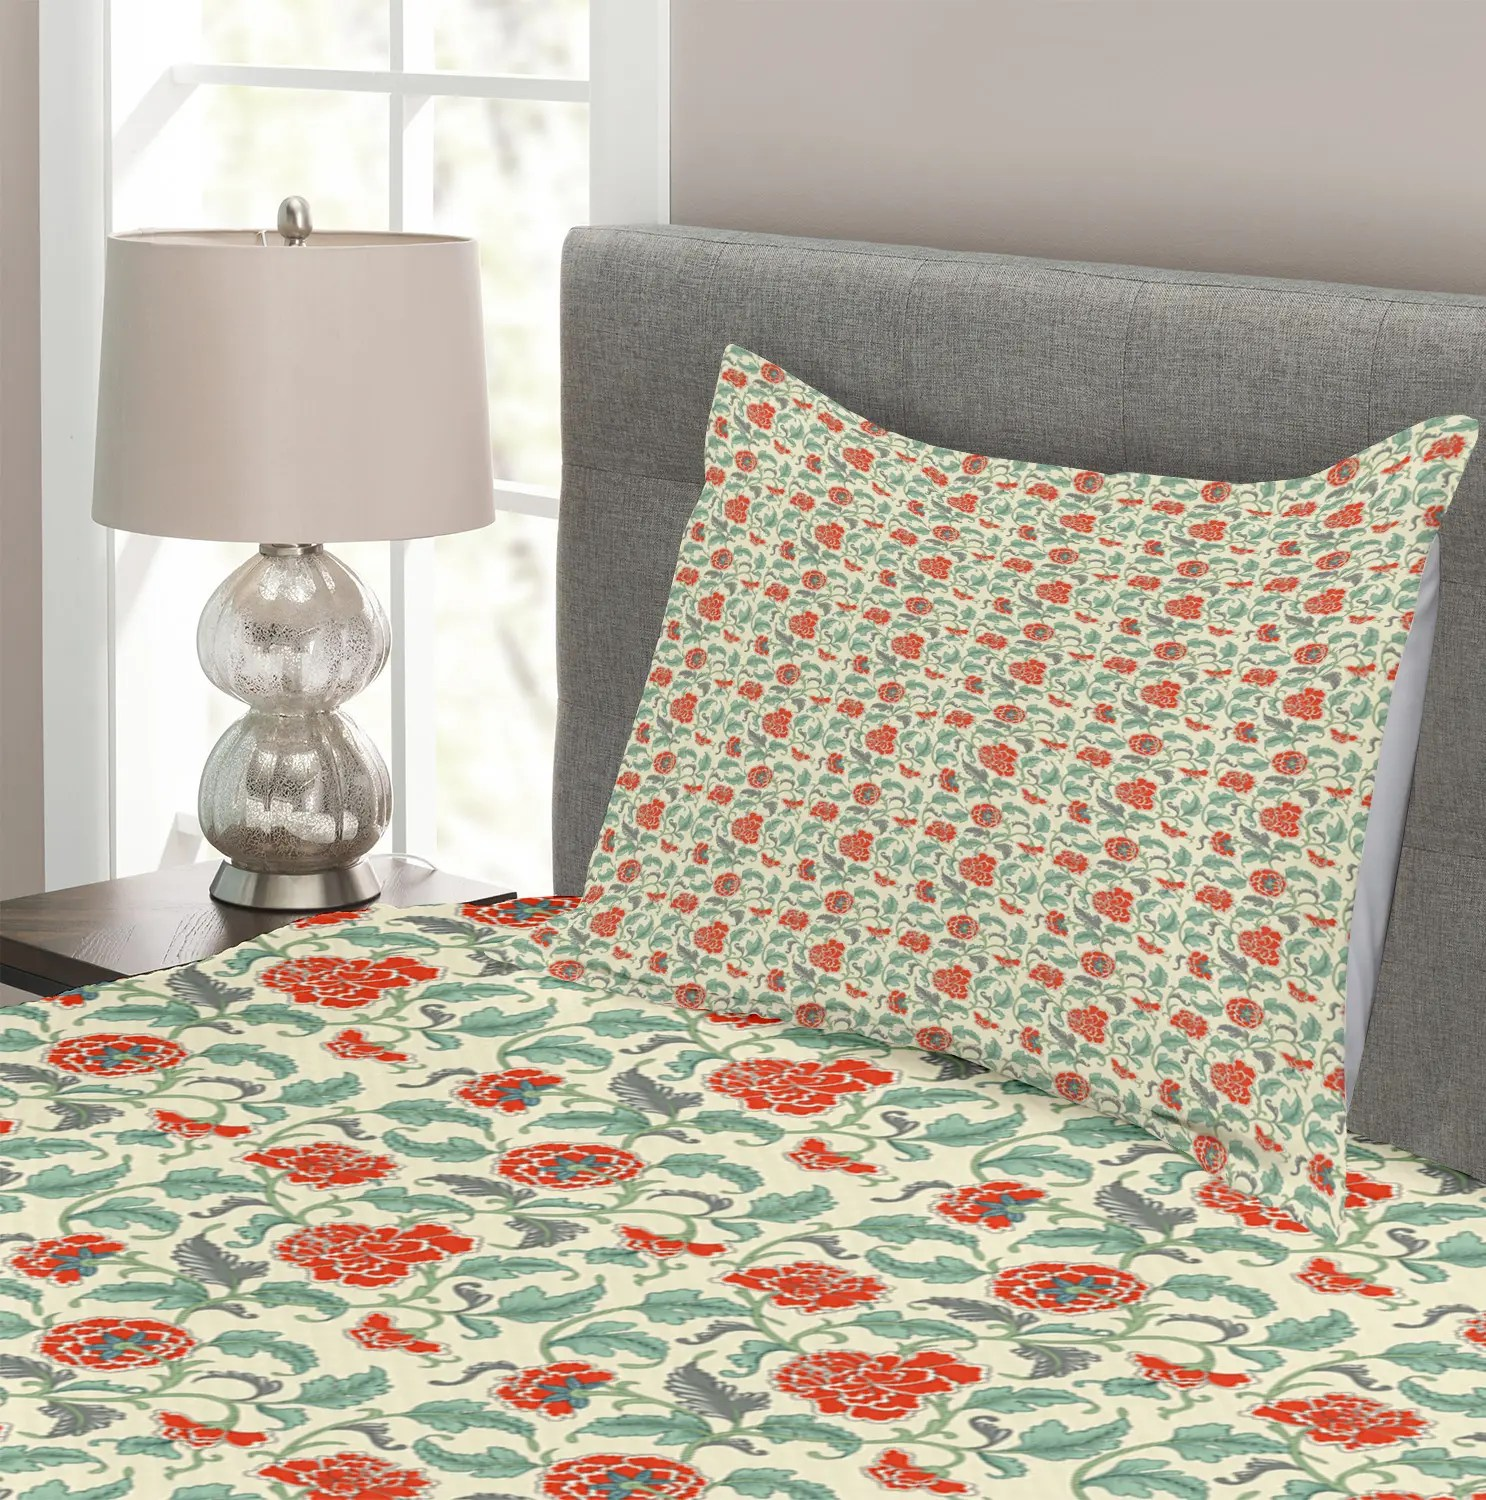 Deadpool Bettwäsche Asian Quilted Bedspread Pillow Shams Set Eastern Inspired